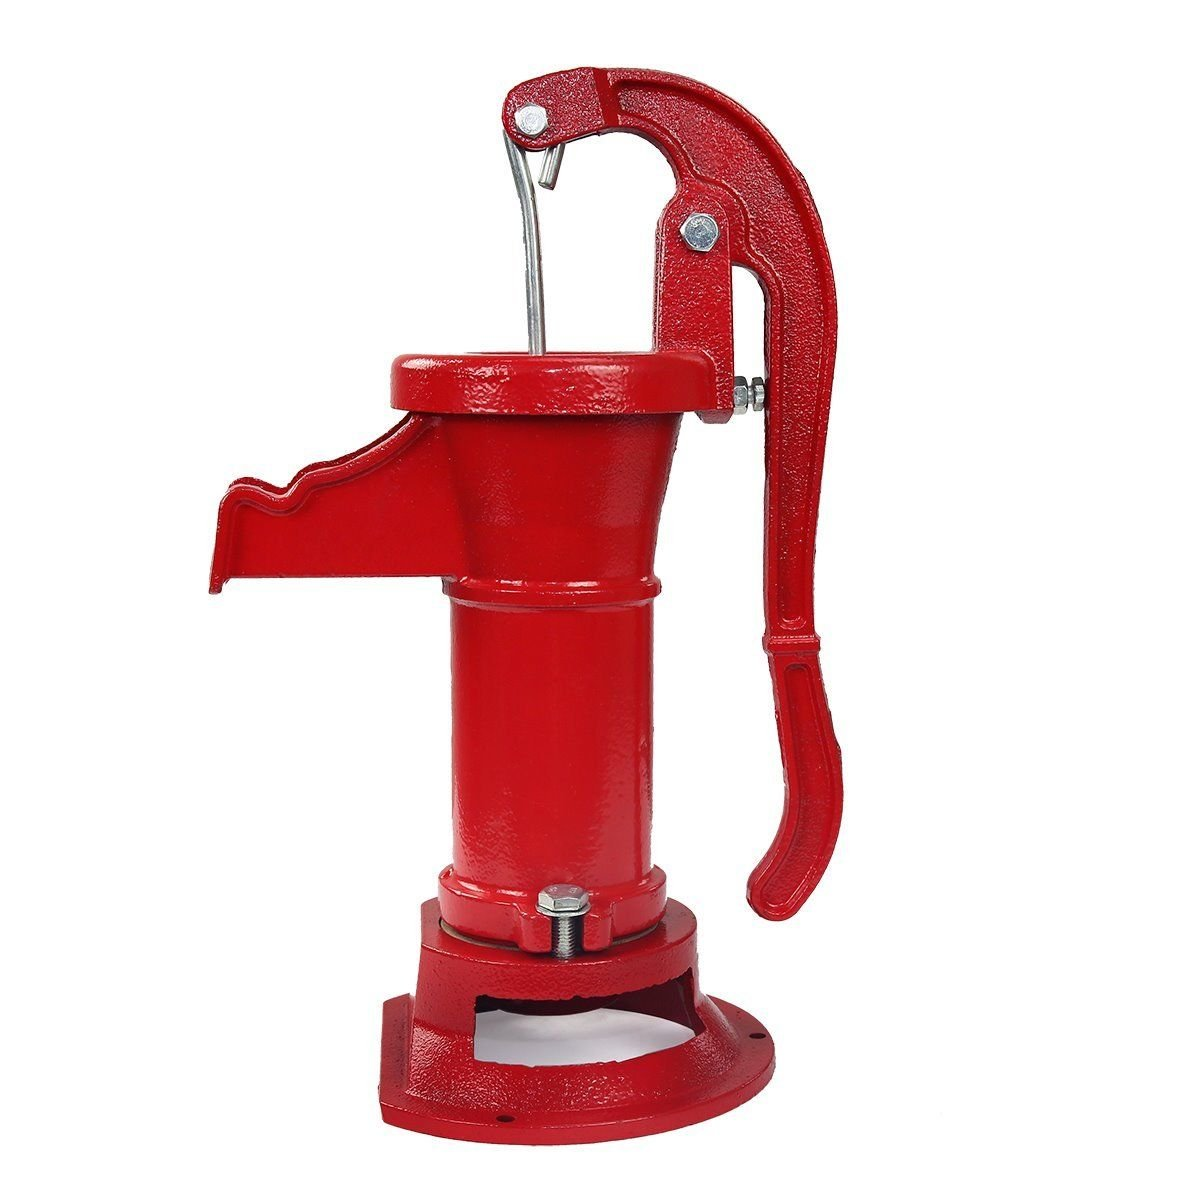 COLIBROX--New Antique Style Heavy Duty Cast Iron Red Well Hand Operated Pitcher Pump 25 Ft. Designed for rugged long life service All parts are made from close grain cast iron for optimum strength. by COLIBROX (Image #4)